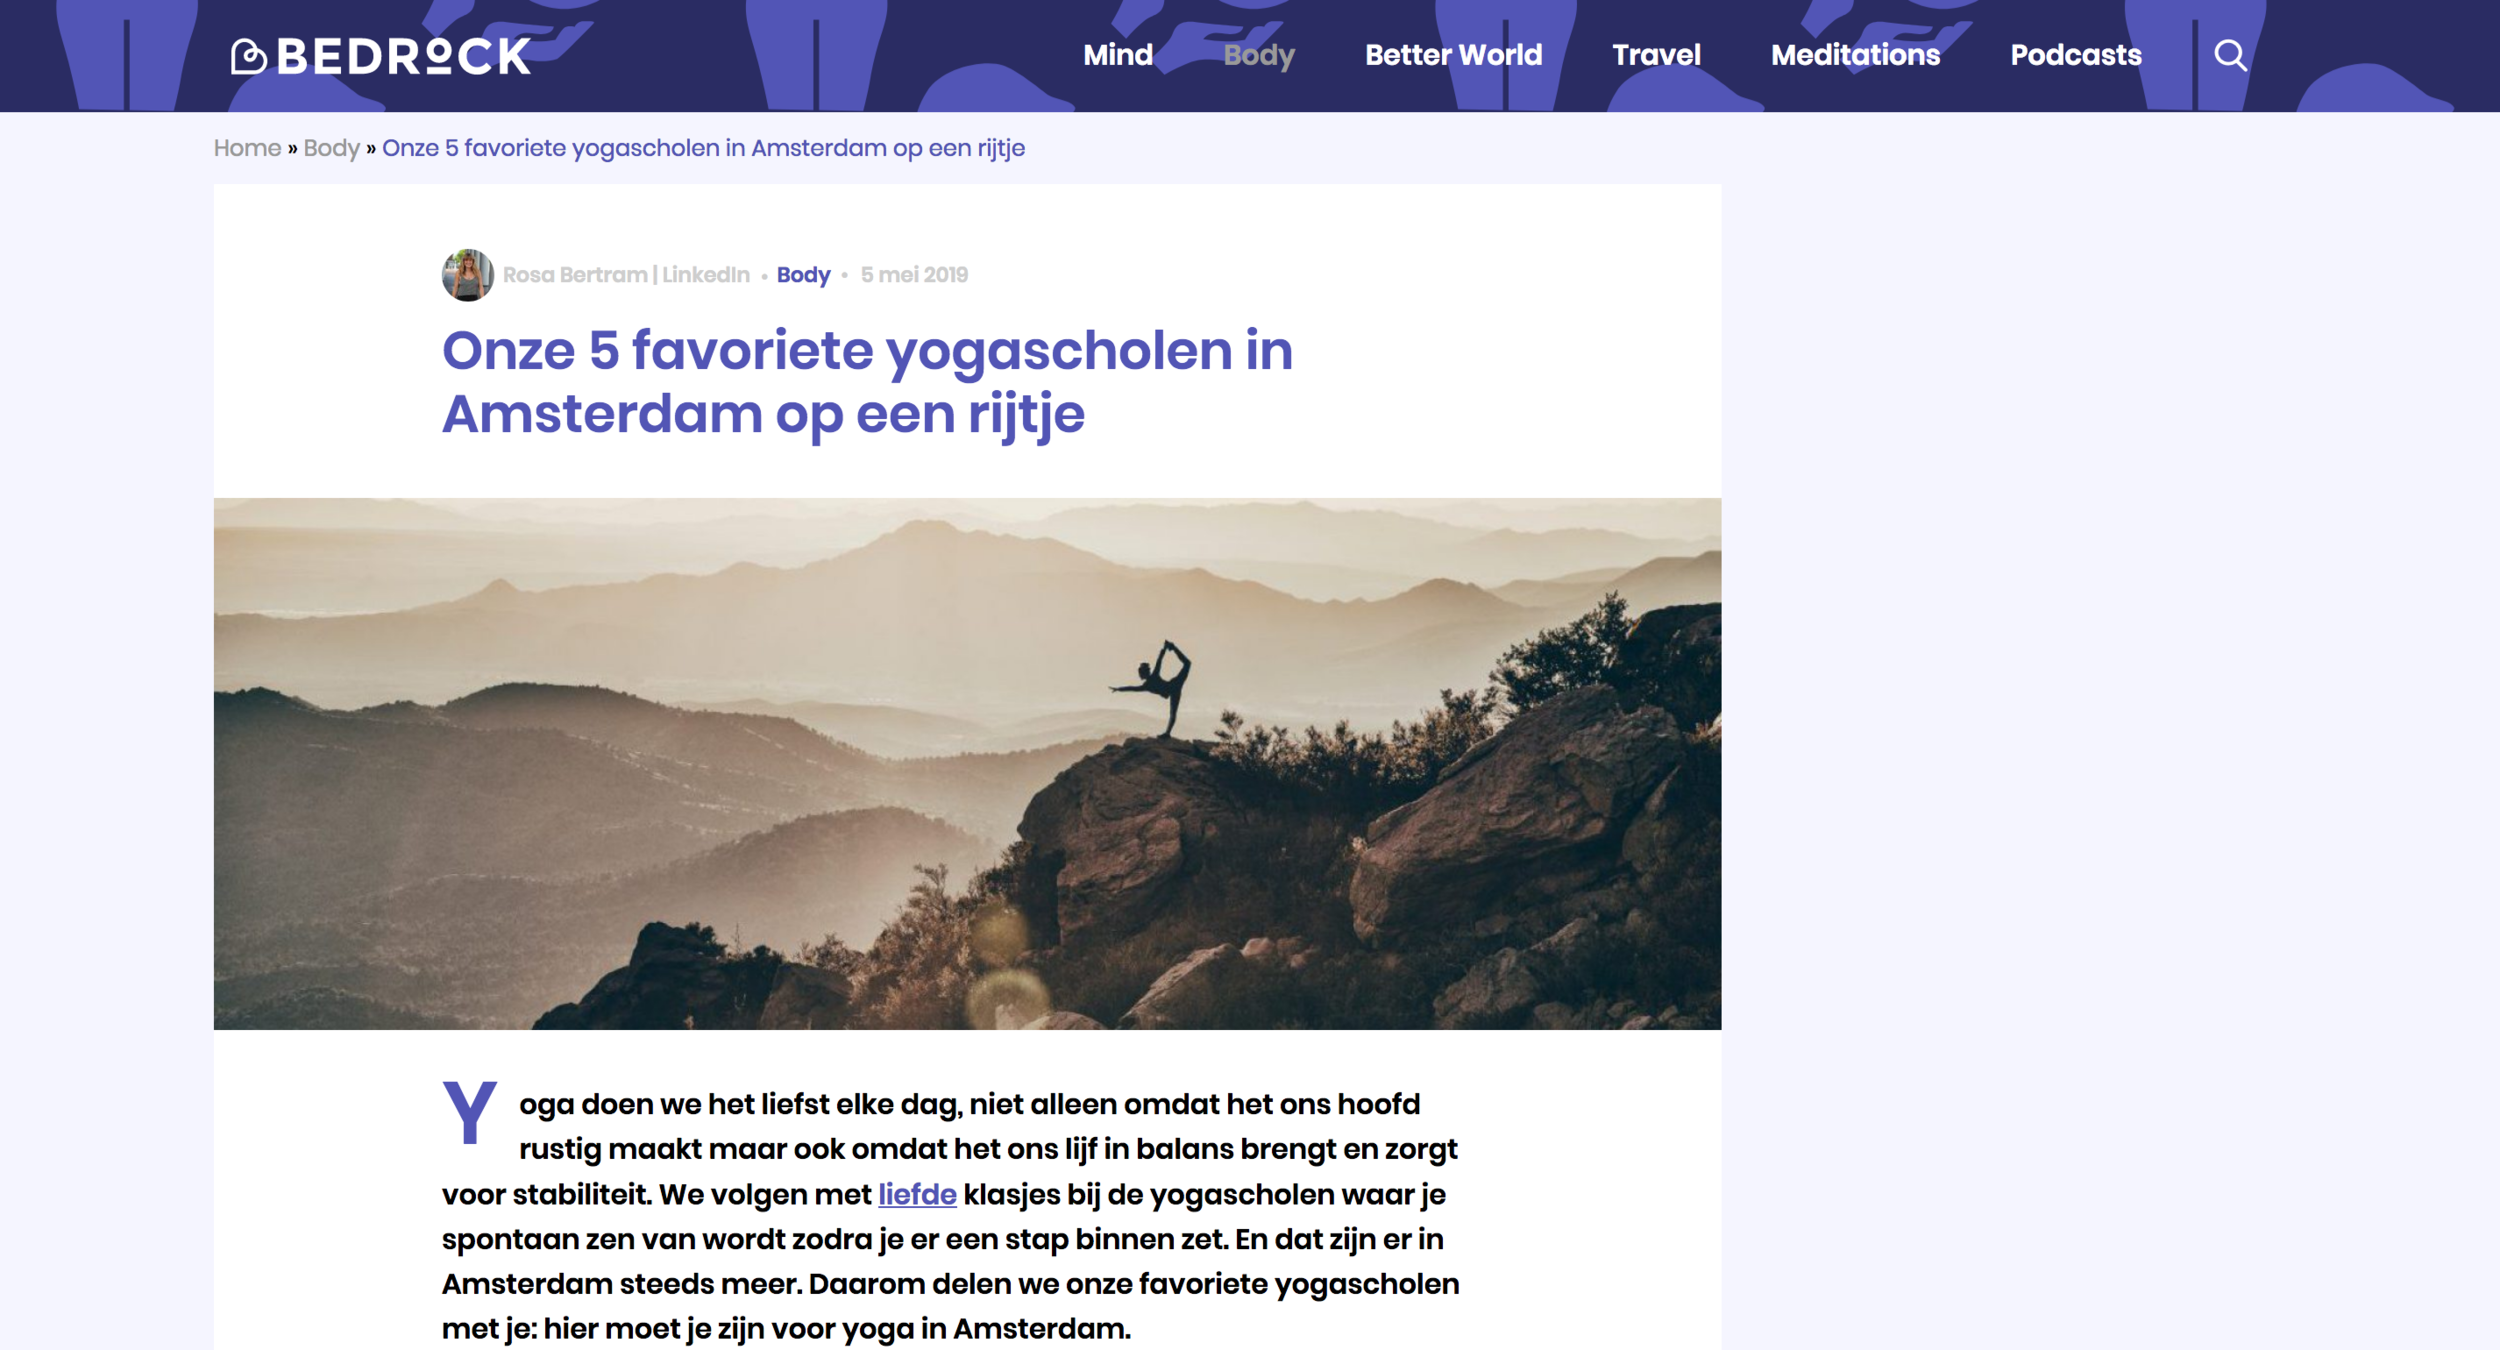 https://www.bedrock.nl/yoga-in-amsterdam/